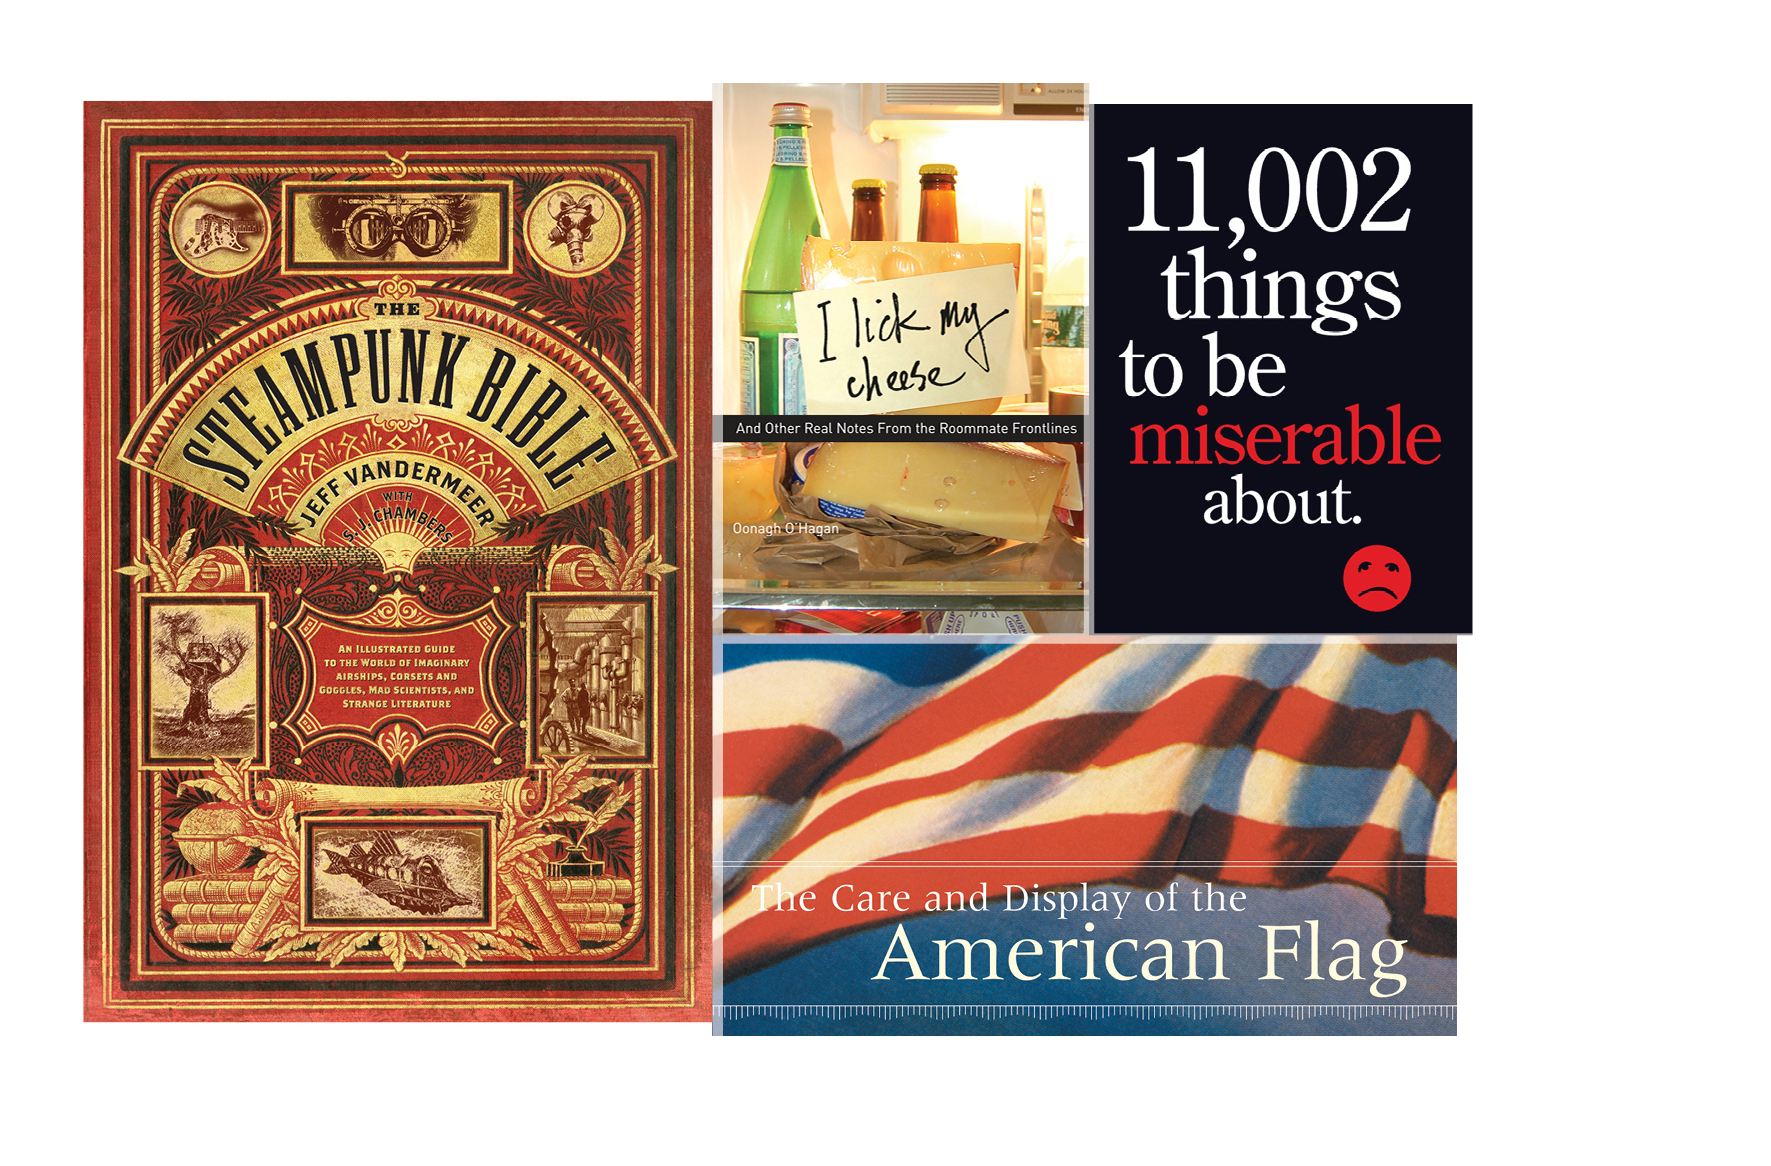 Pop culture -   The Steampunk Bible, I Lick My Cheese, 11,002 Things to Be Miserable About, Care and Display of the American Flag